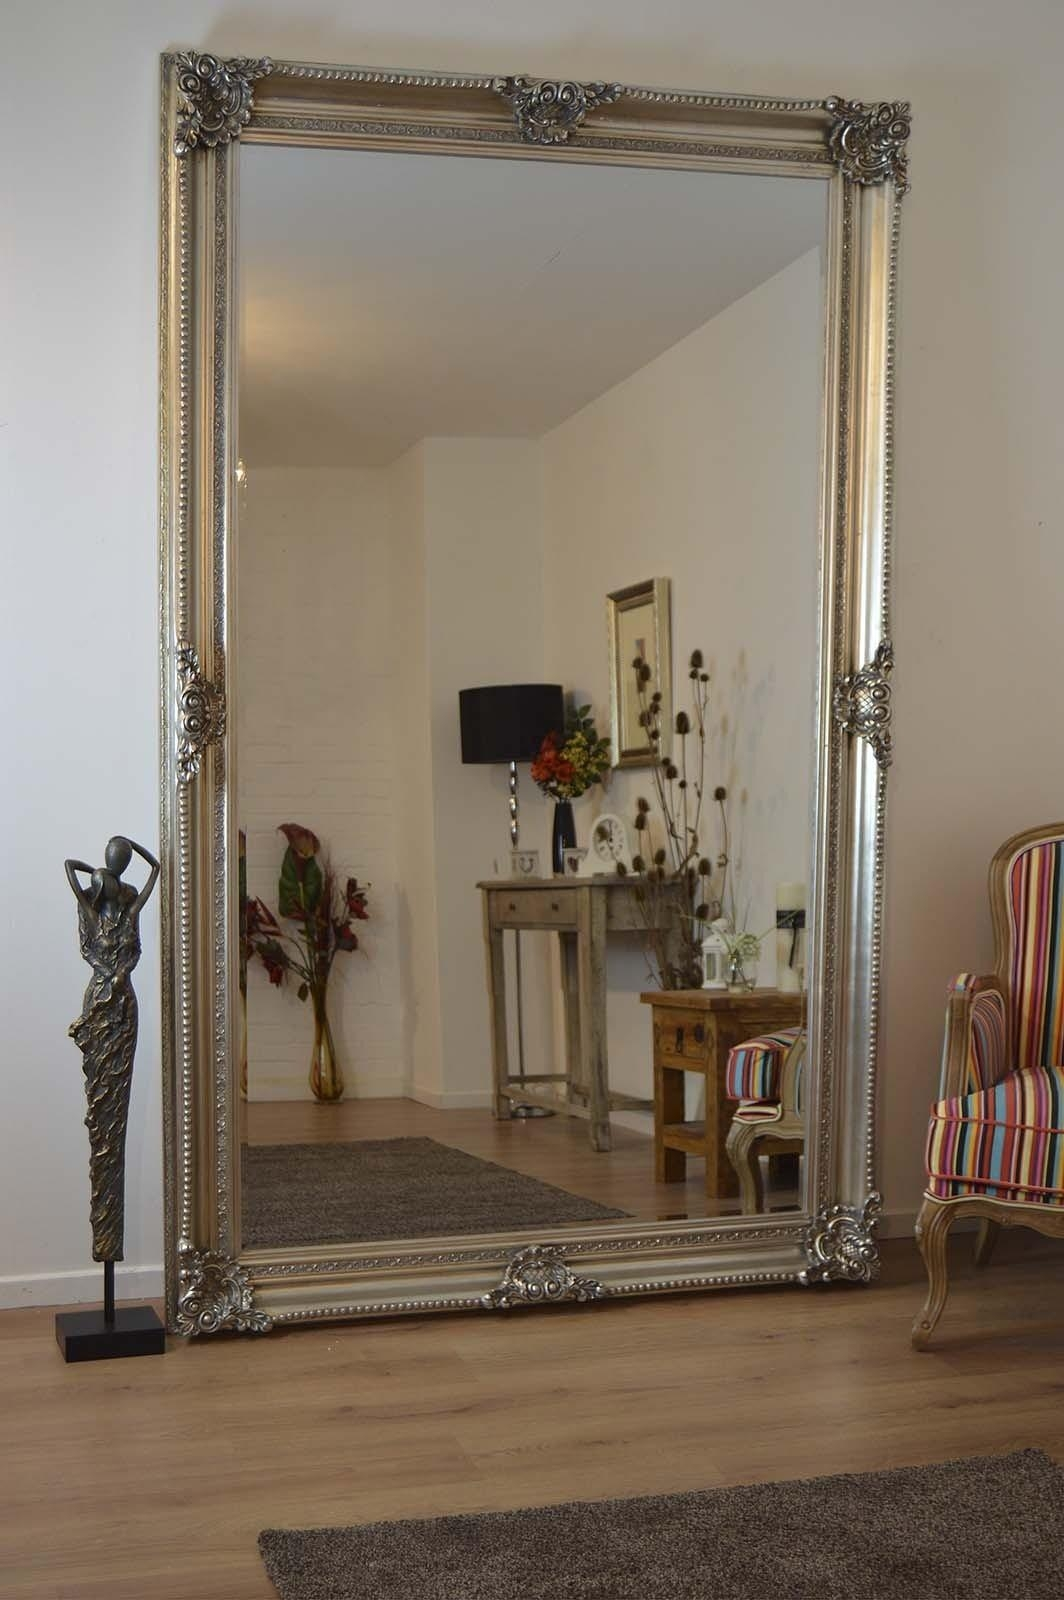 Old Fashioned Wall Mirrors Antique Mirror Wall Covering Vintage With Regard To Oversized Antique Mirror (View 2 of 20)